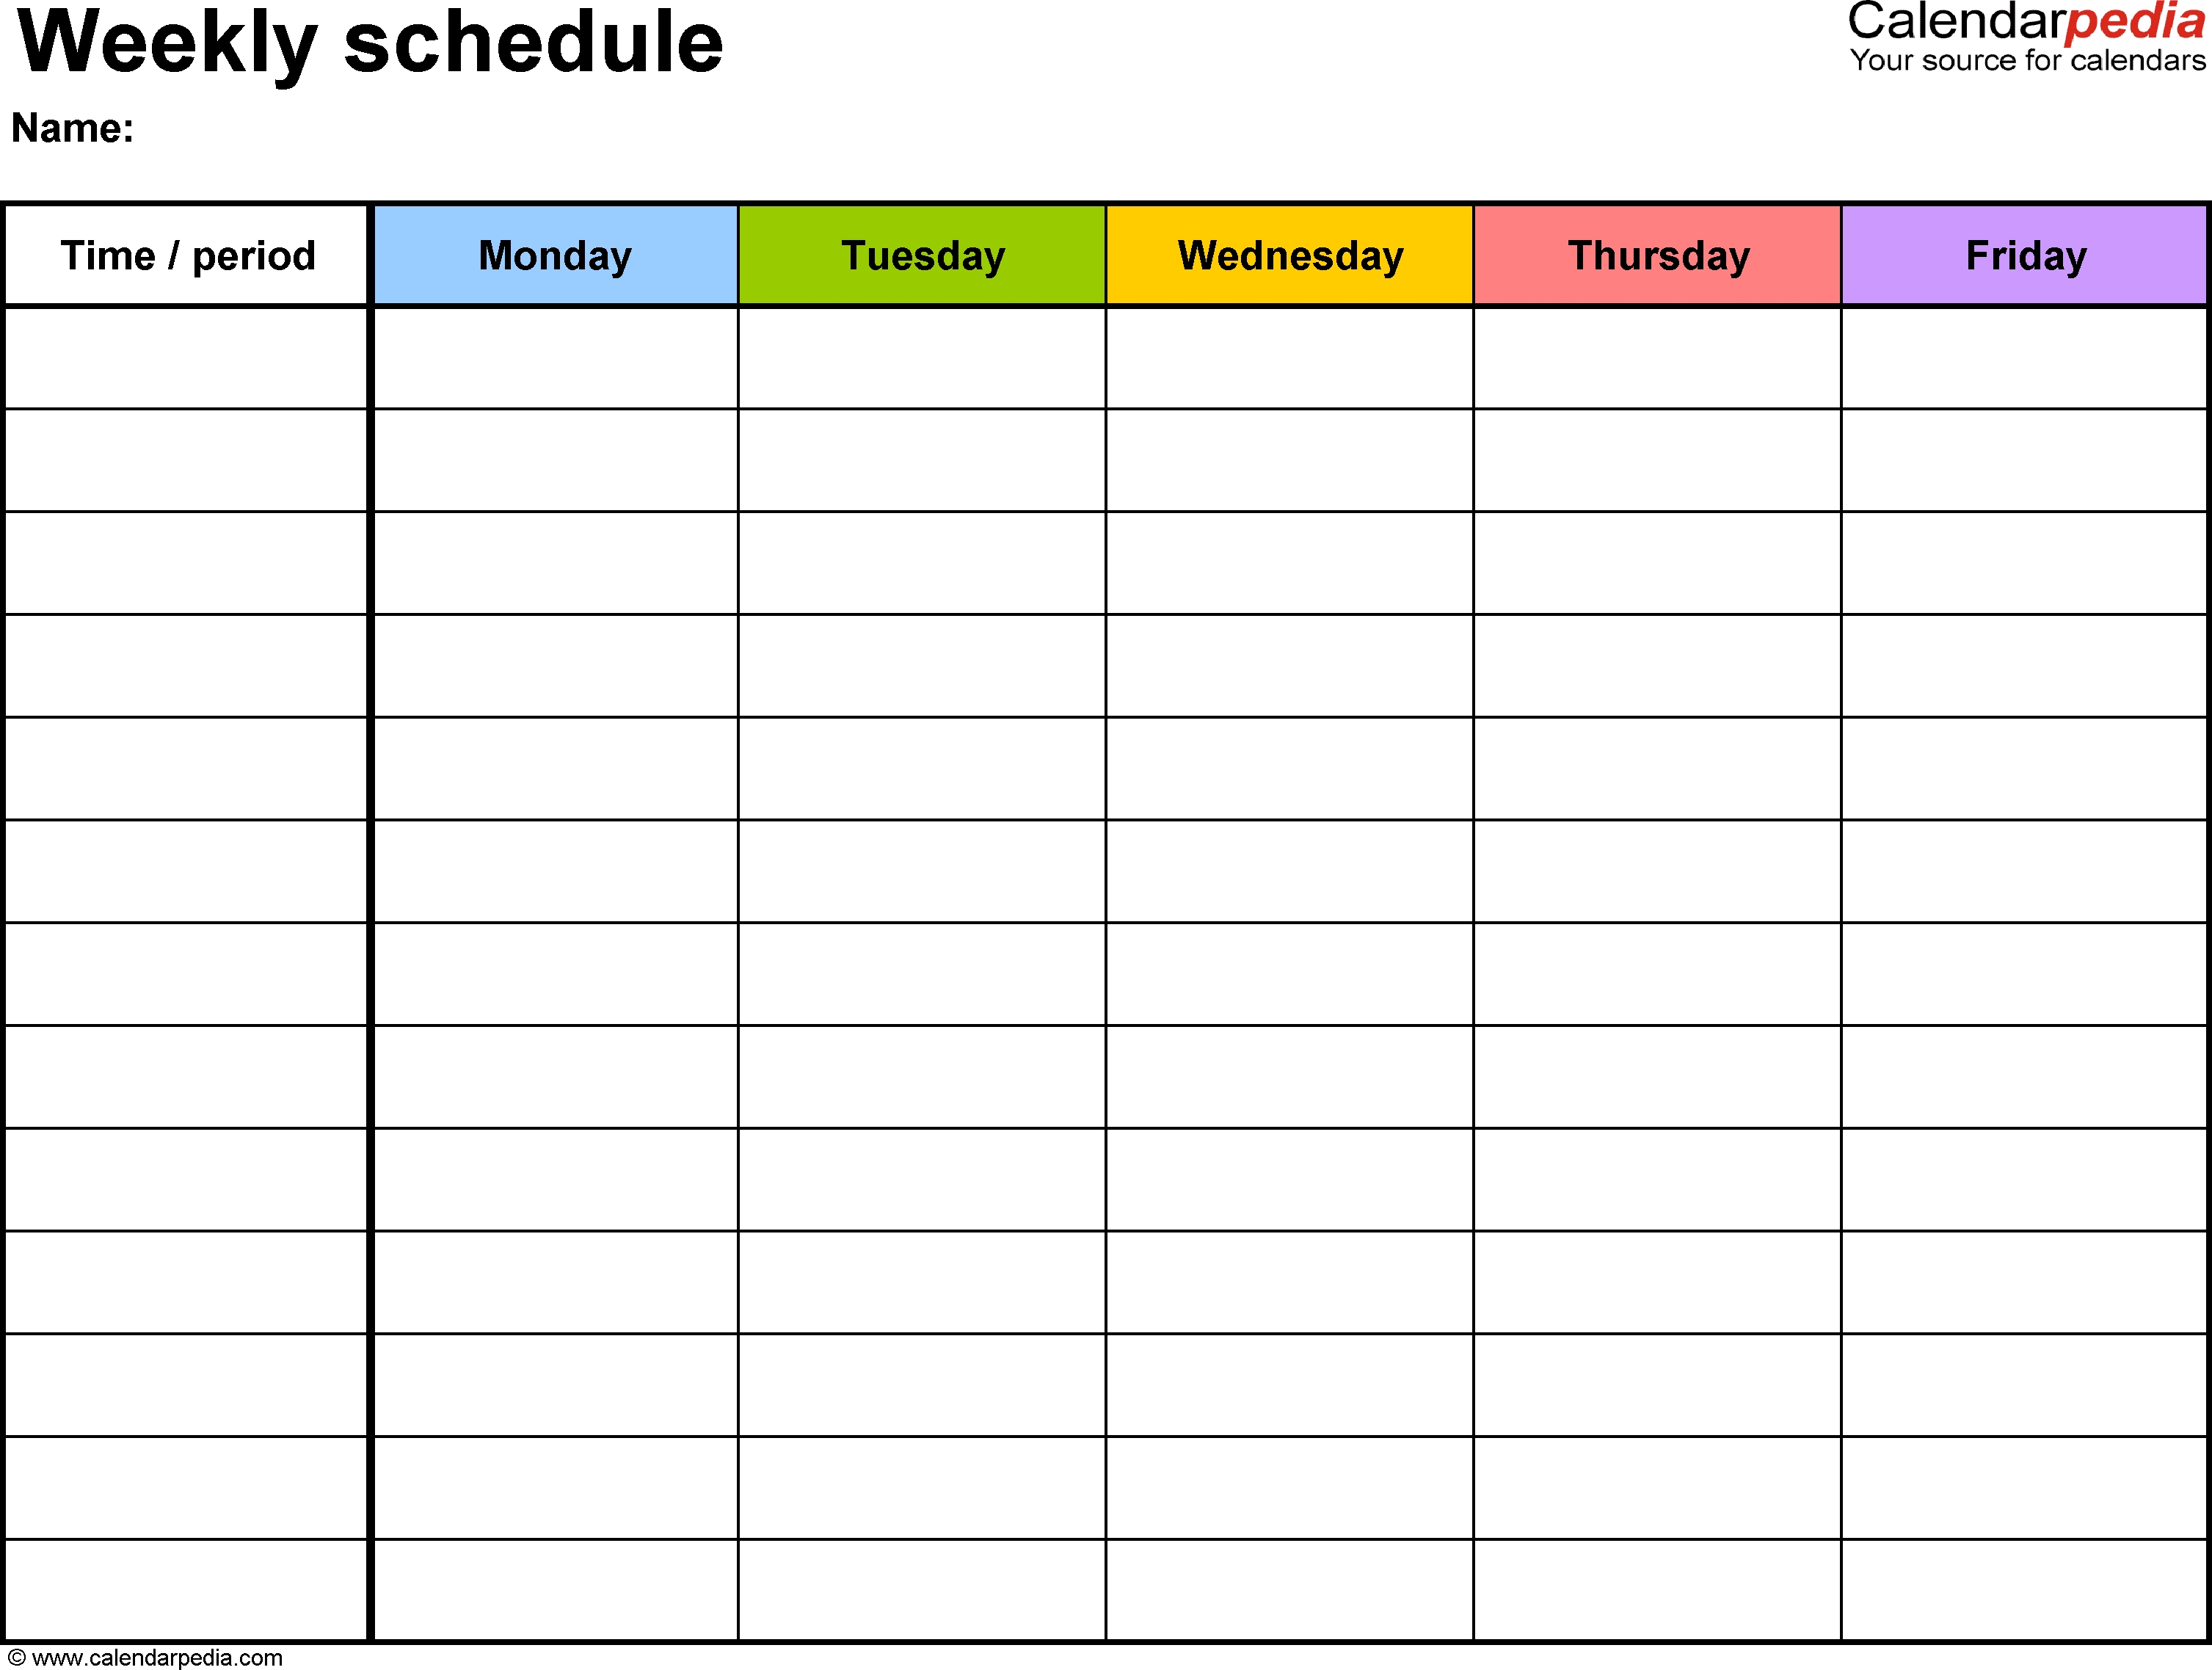 Free Weekly Schedule Templates For Word - 18 Templates pertaining to Blank Weekly Calendar Print Outs